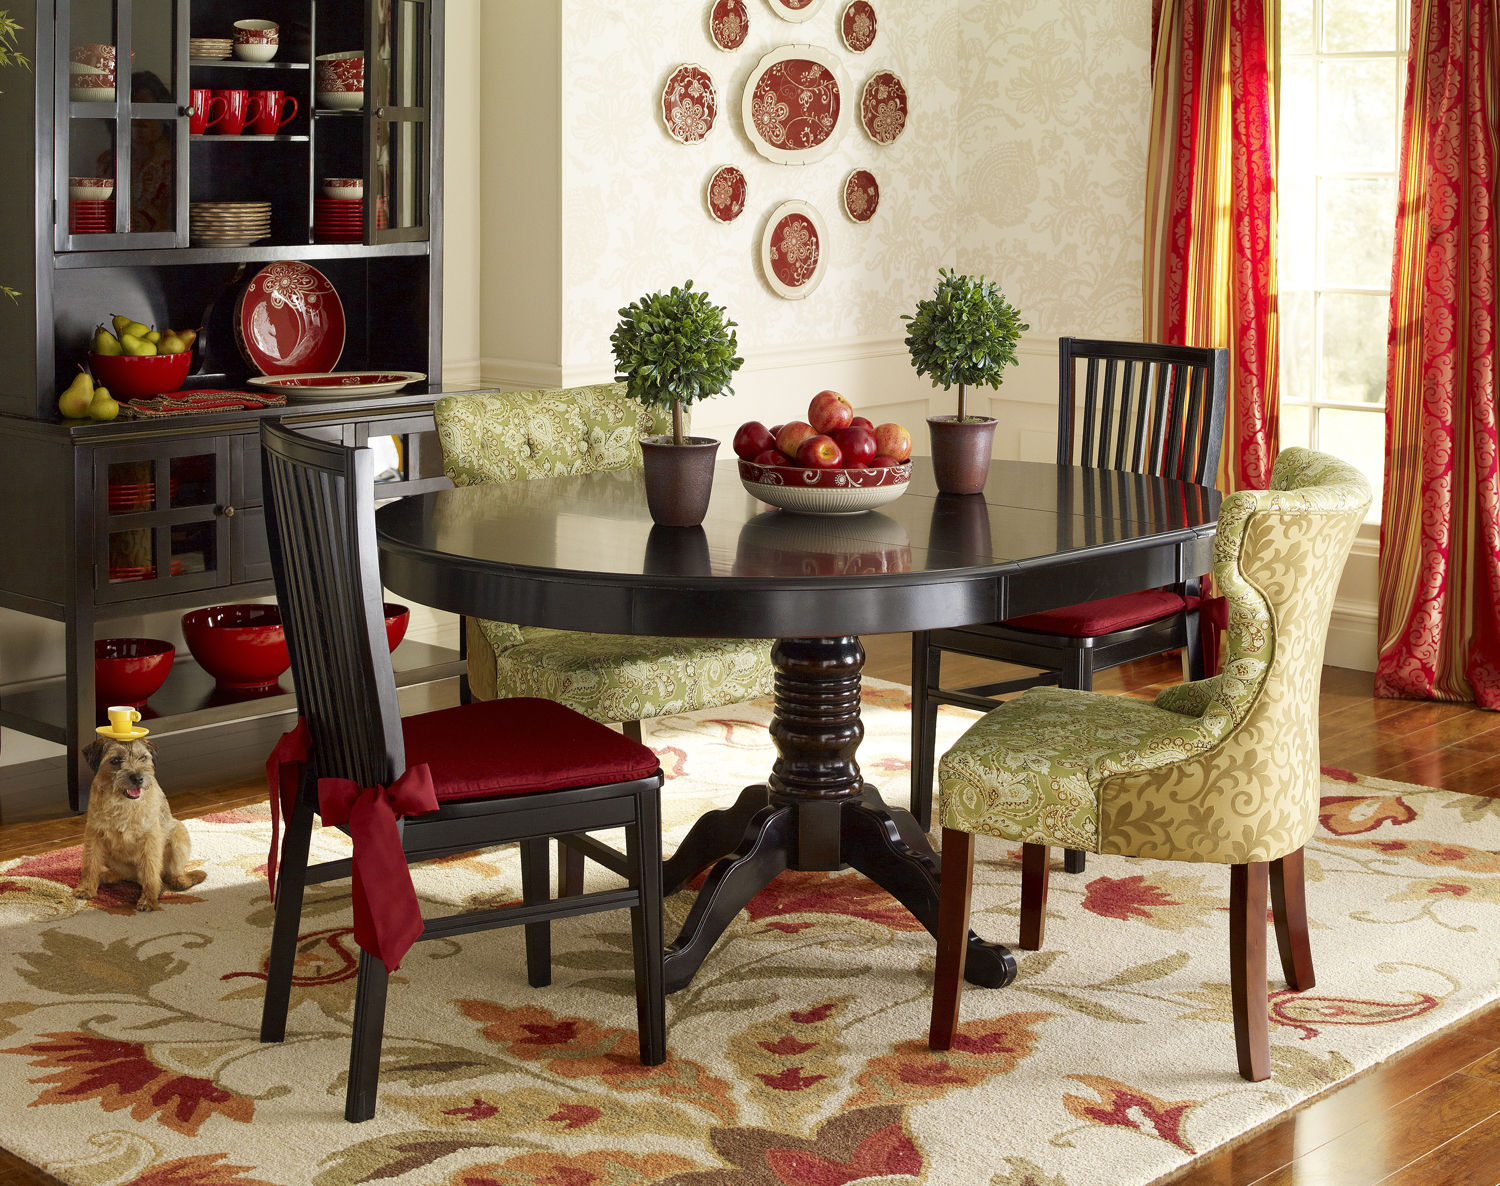 Dining room ideas design inpiration for Pier 1 dining room centerpieces